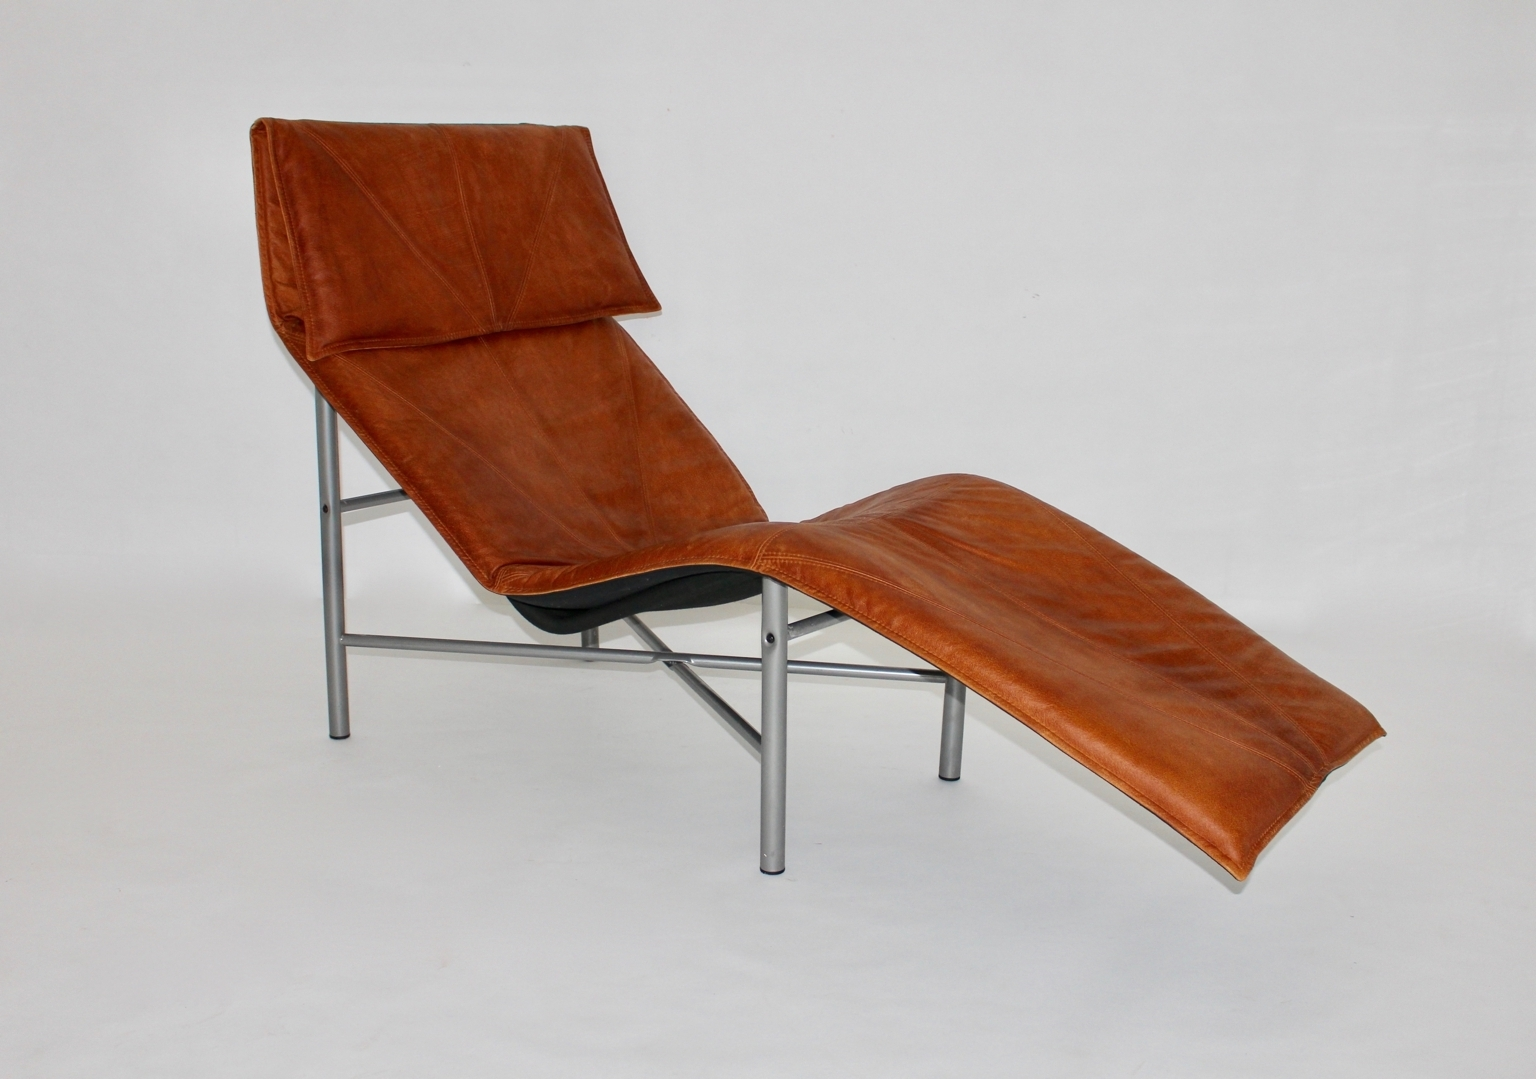 Latest Leather Chaise Lounges Pertaining To Swedish Cognac Leather Chaise Loungetord Bjorklund, 1970S For (View 8 of 15)